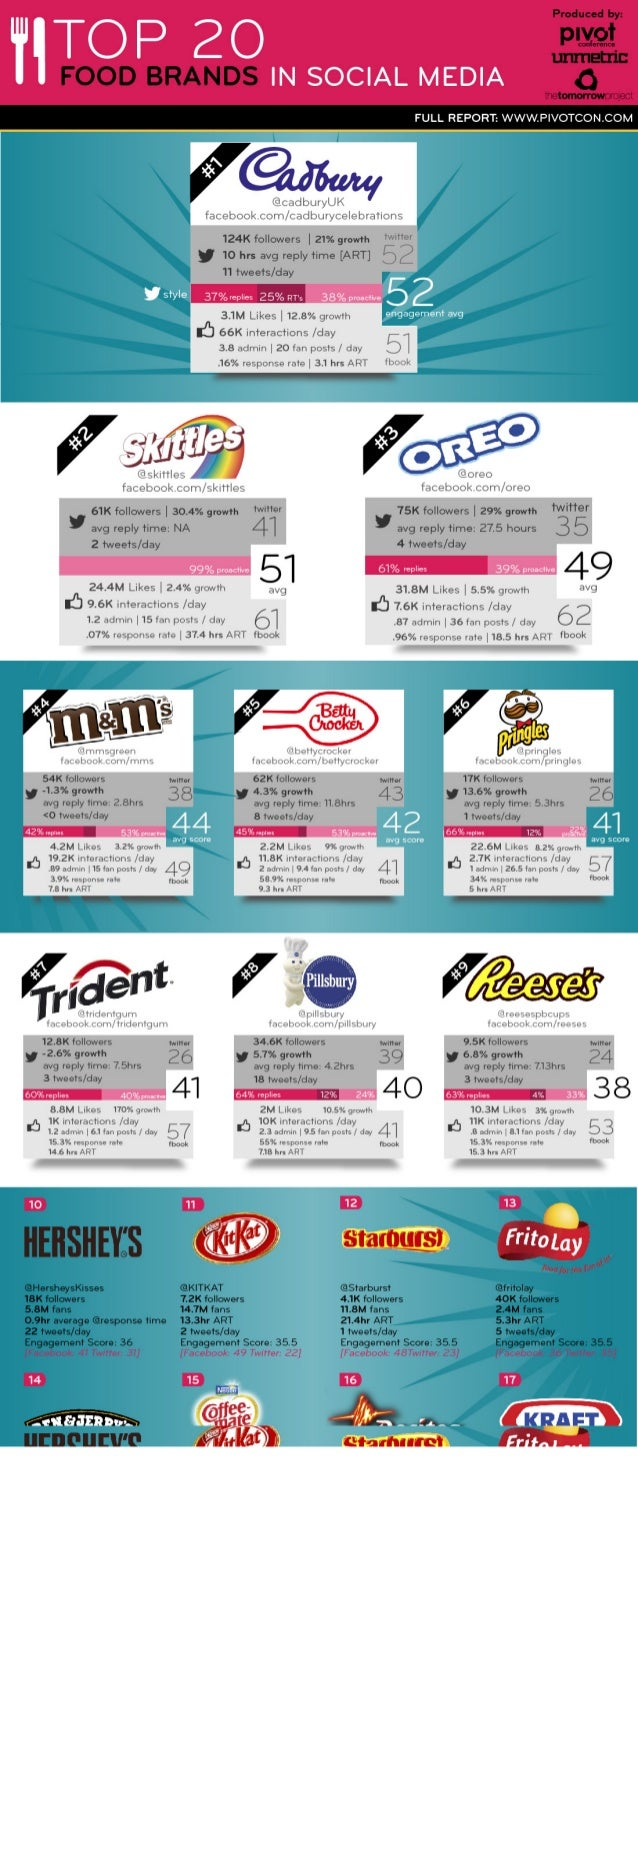 Collaborative IQ with Denise Holt - INFOGRAPHIC Top 20 Social Food Brands